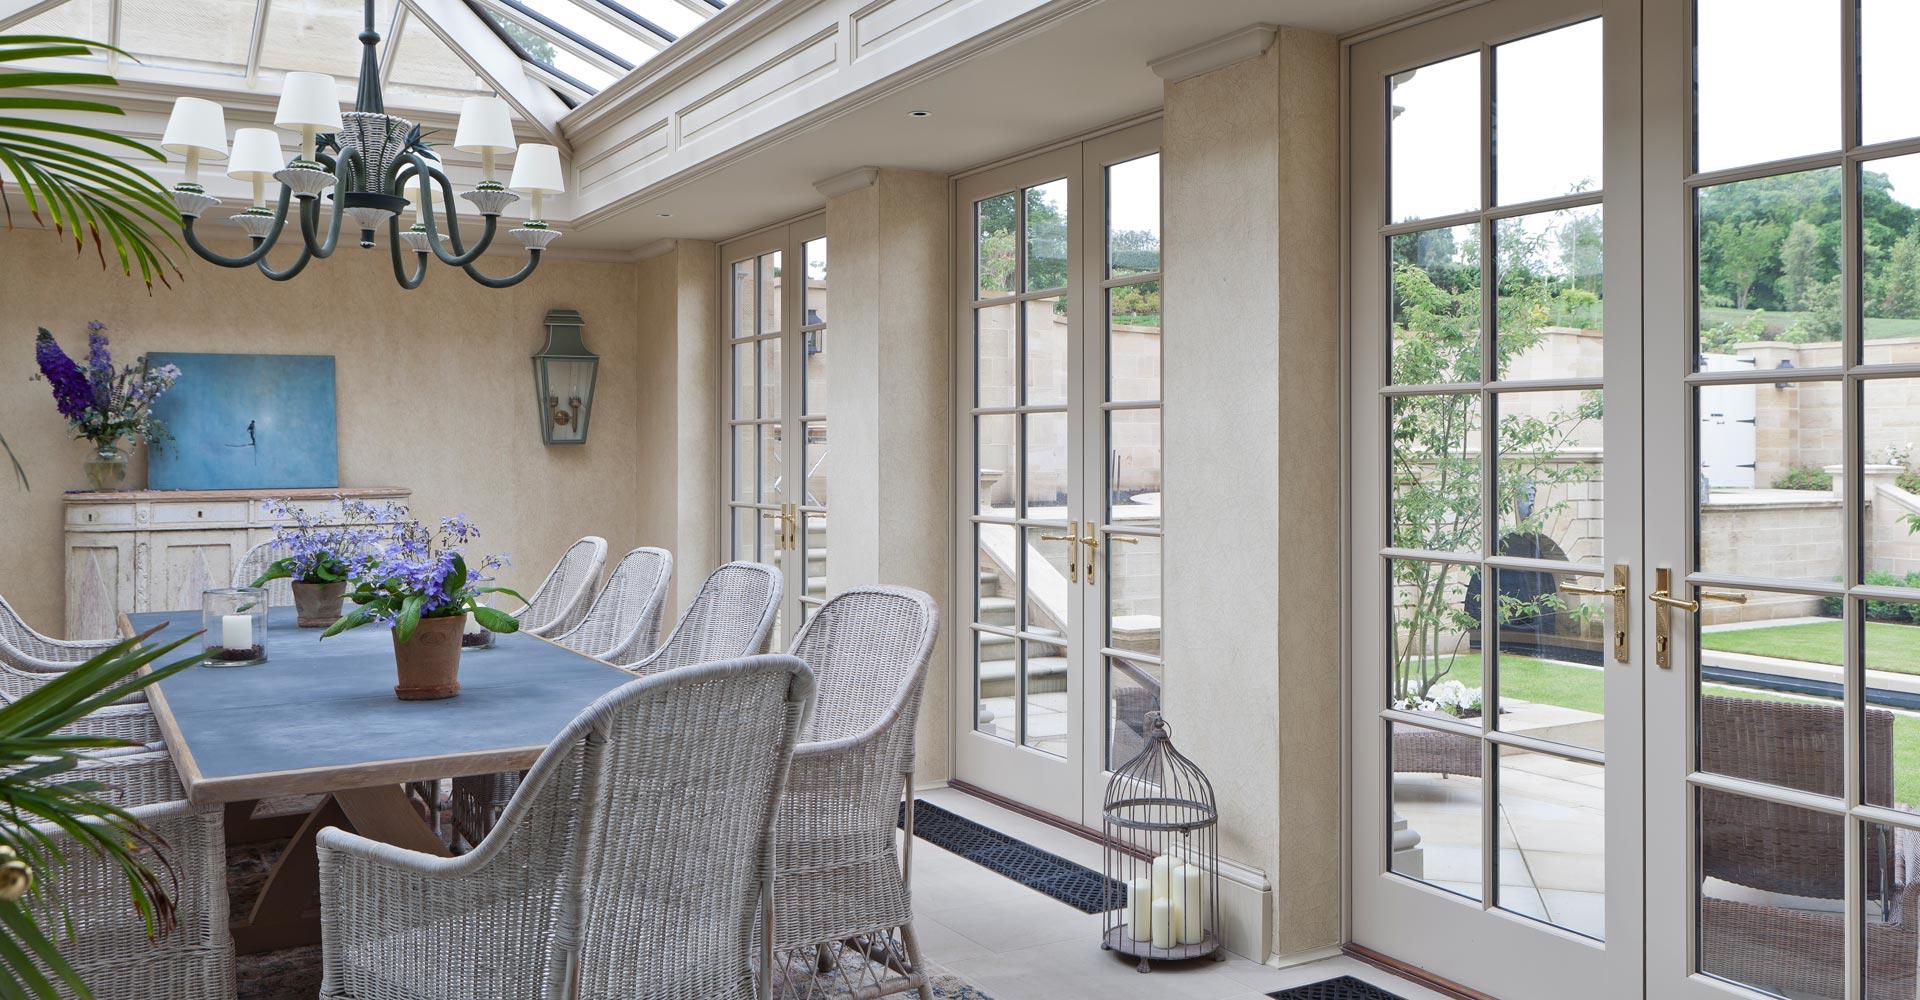 Orangeries - Bespoke Orangeries by Vale Garden Houses